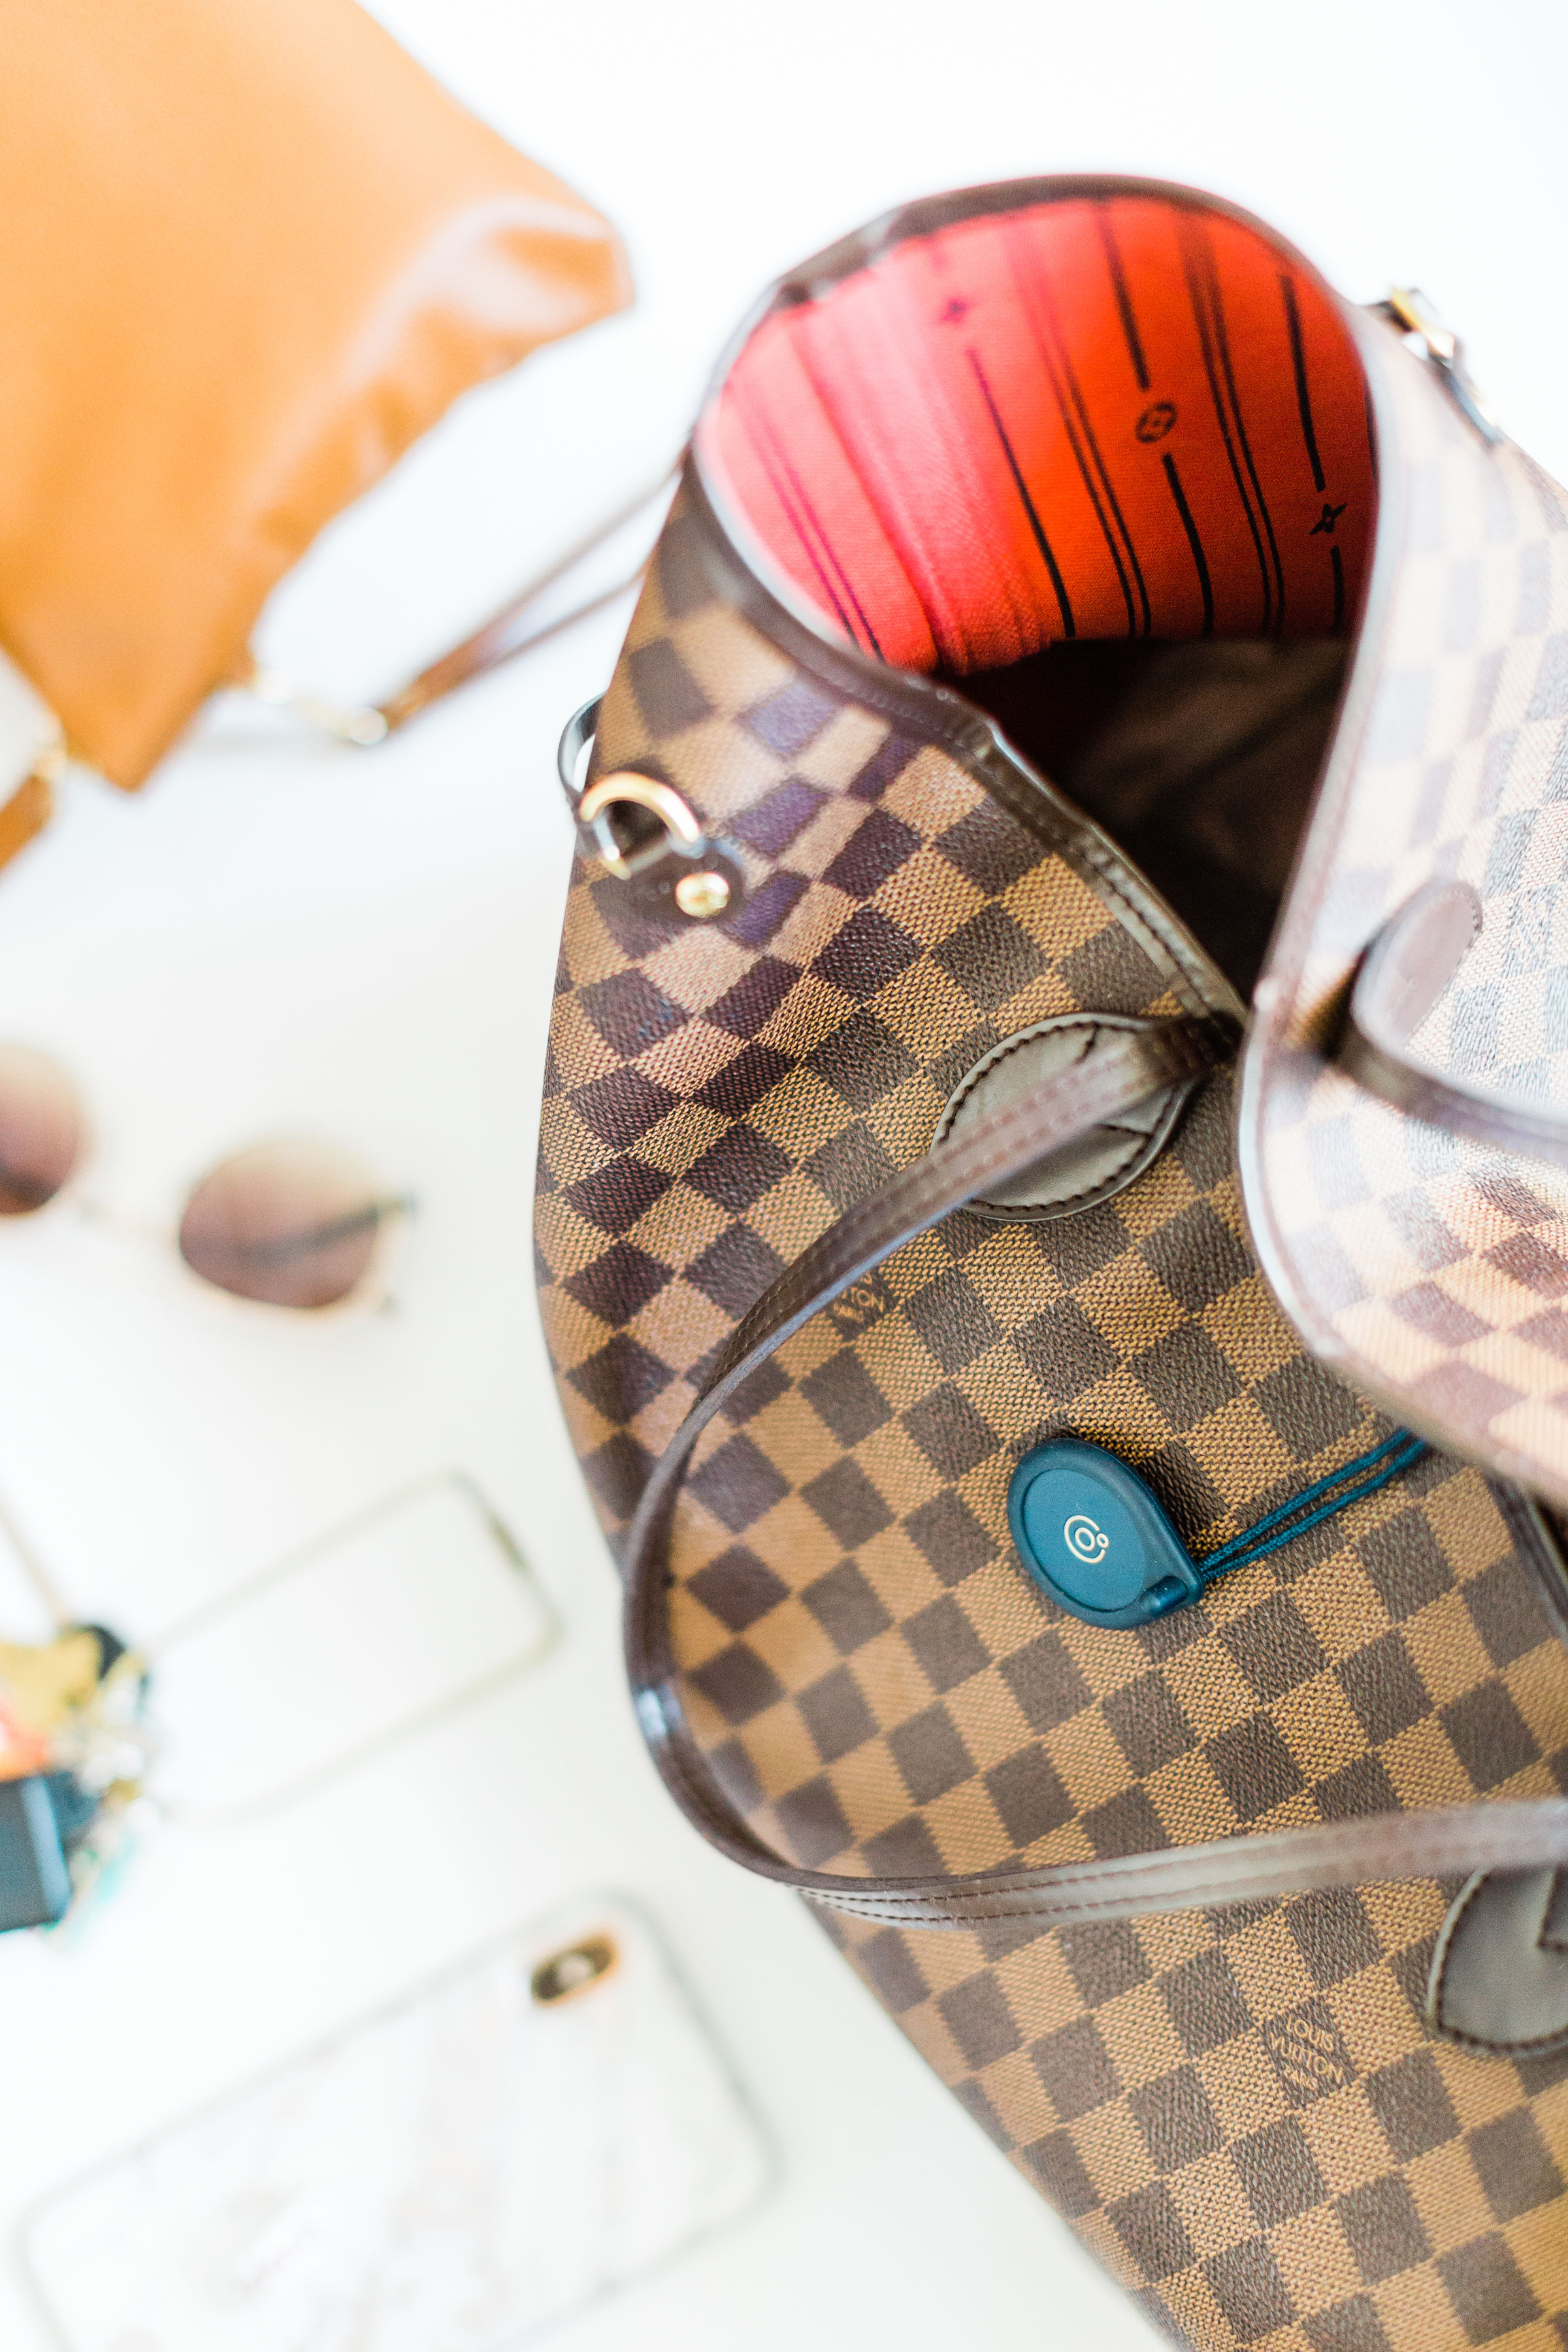 My new favorite mom hack - Adero and a Louis Vuitton bag